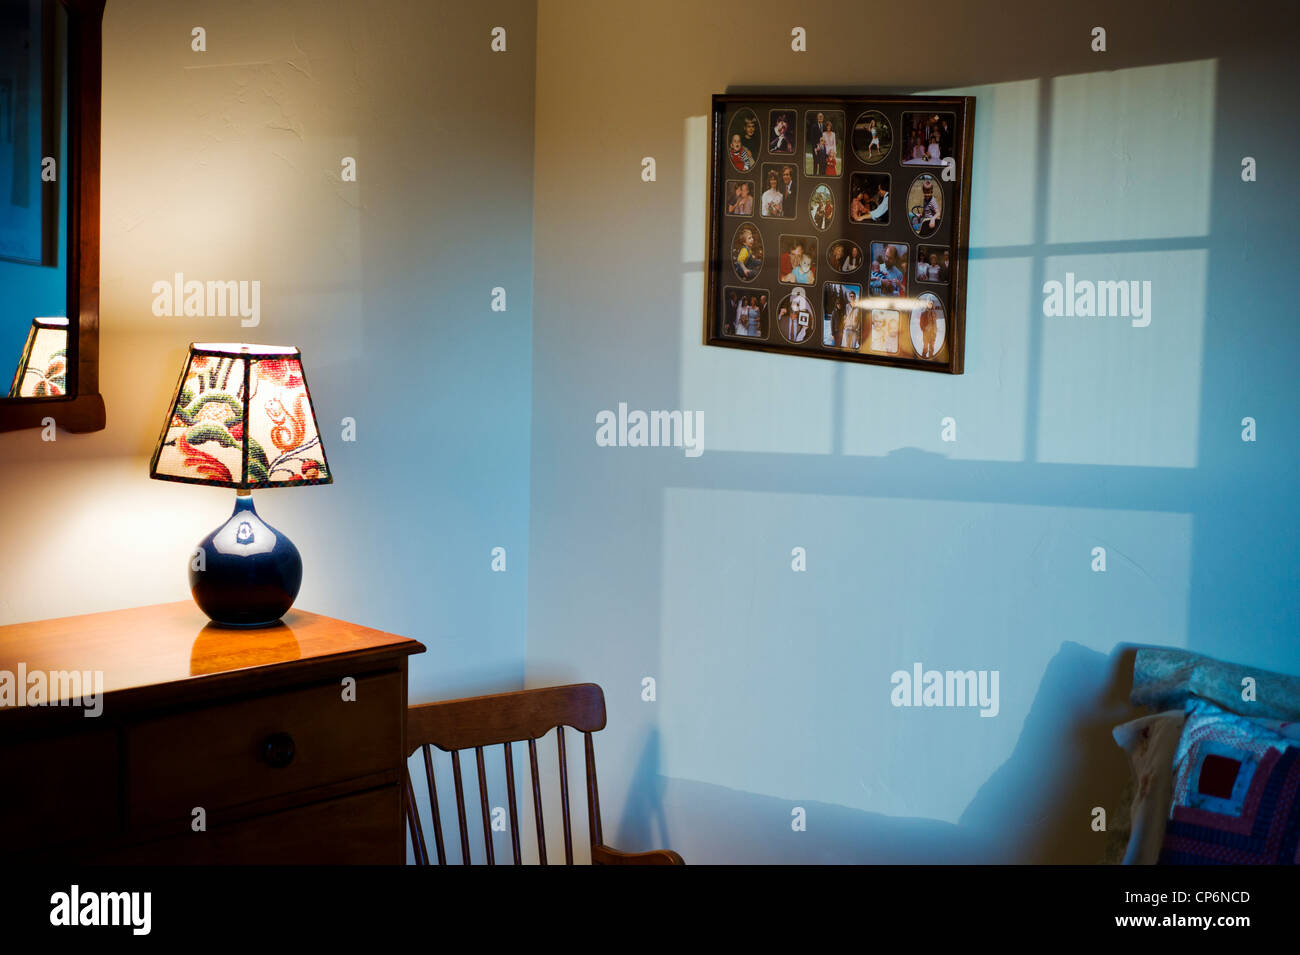 Framed montage of family heirloom photographs hanging on the wall of a private residence. - Stock Image